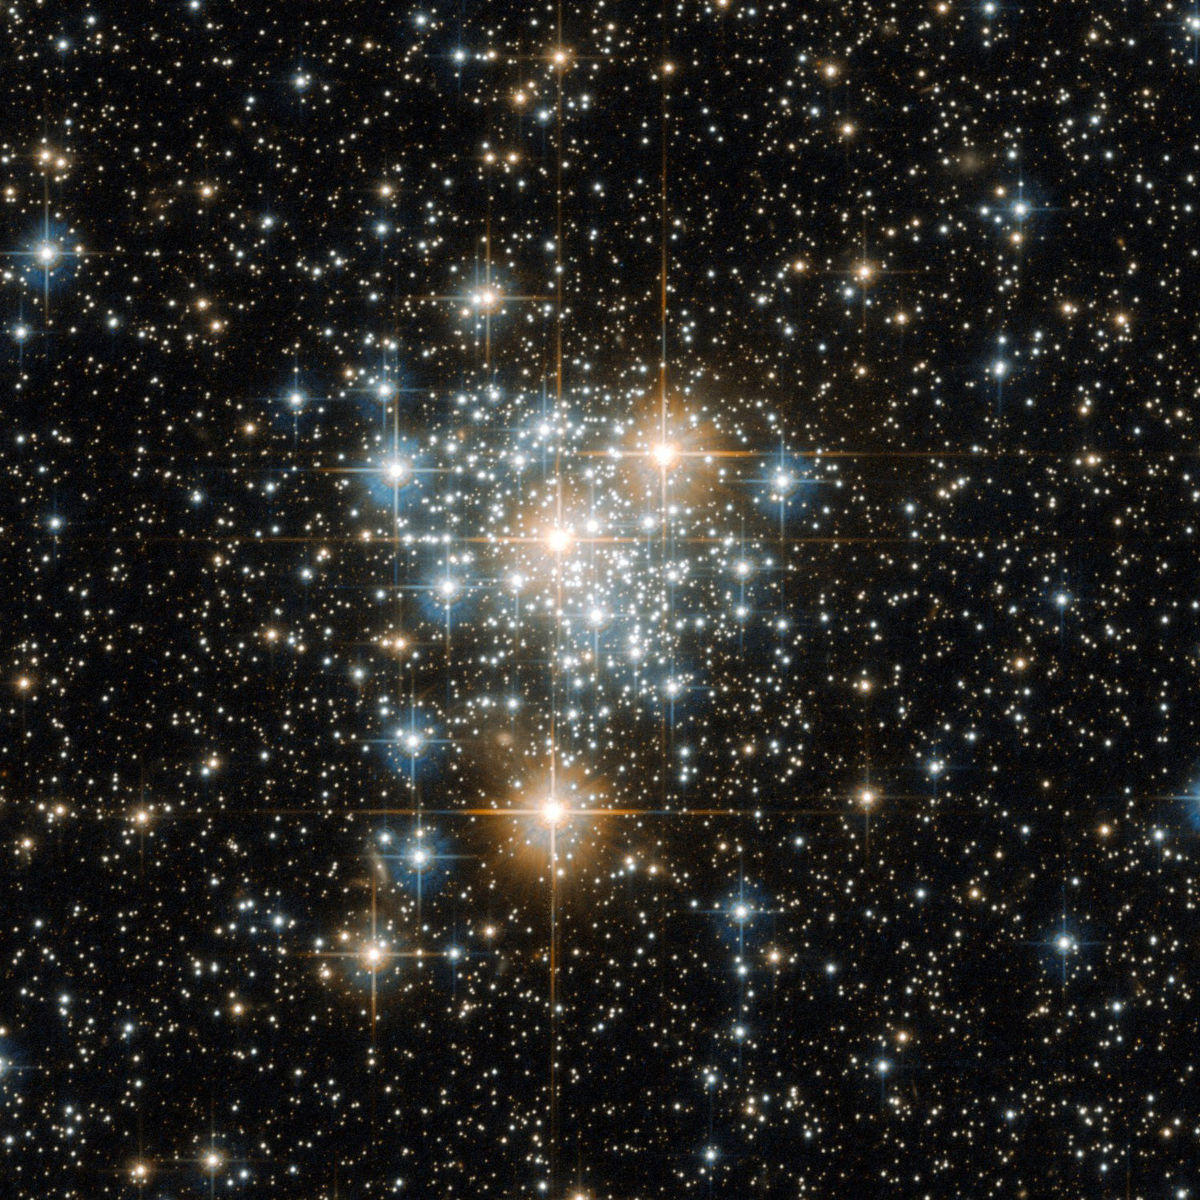 The Sun may have been born in an open cluster, a loose collection of stars that has since dissipated, scattering the stars. This image shows NGC 299, an open cluster in a satellite galaxy to our Milky Way. Credit: ESA/Hubble & NASA